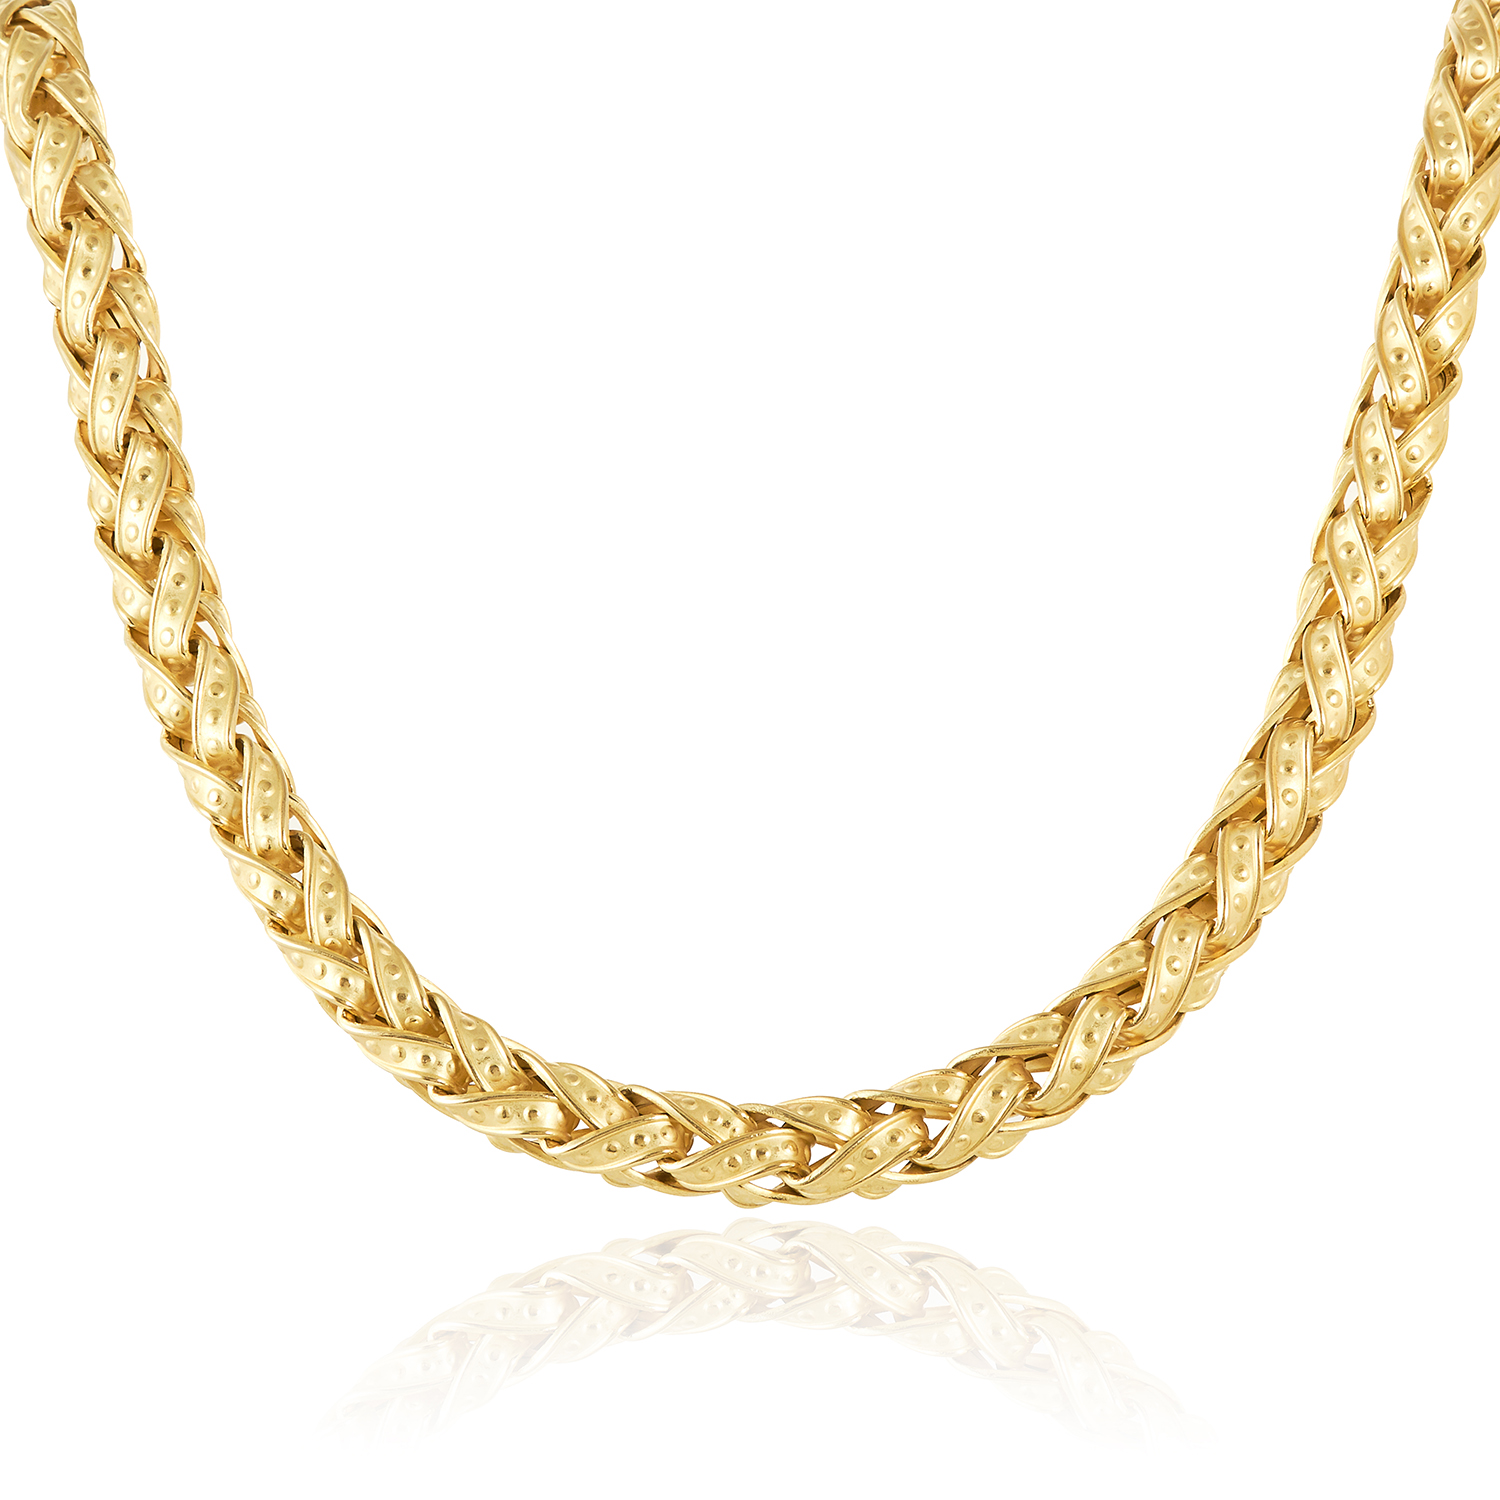 A FANCY LINK CHAIN NECKLACE, SIGNORETTI in 18ct yellow gold, formed of fancy interwoven links with